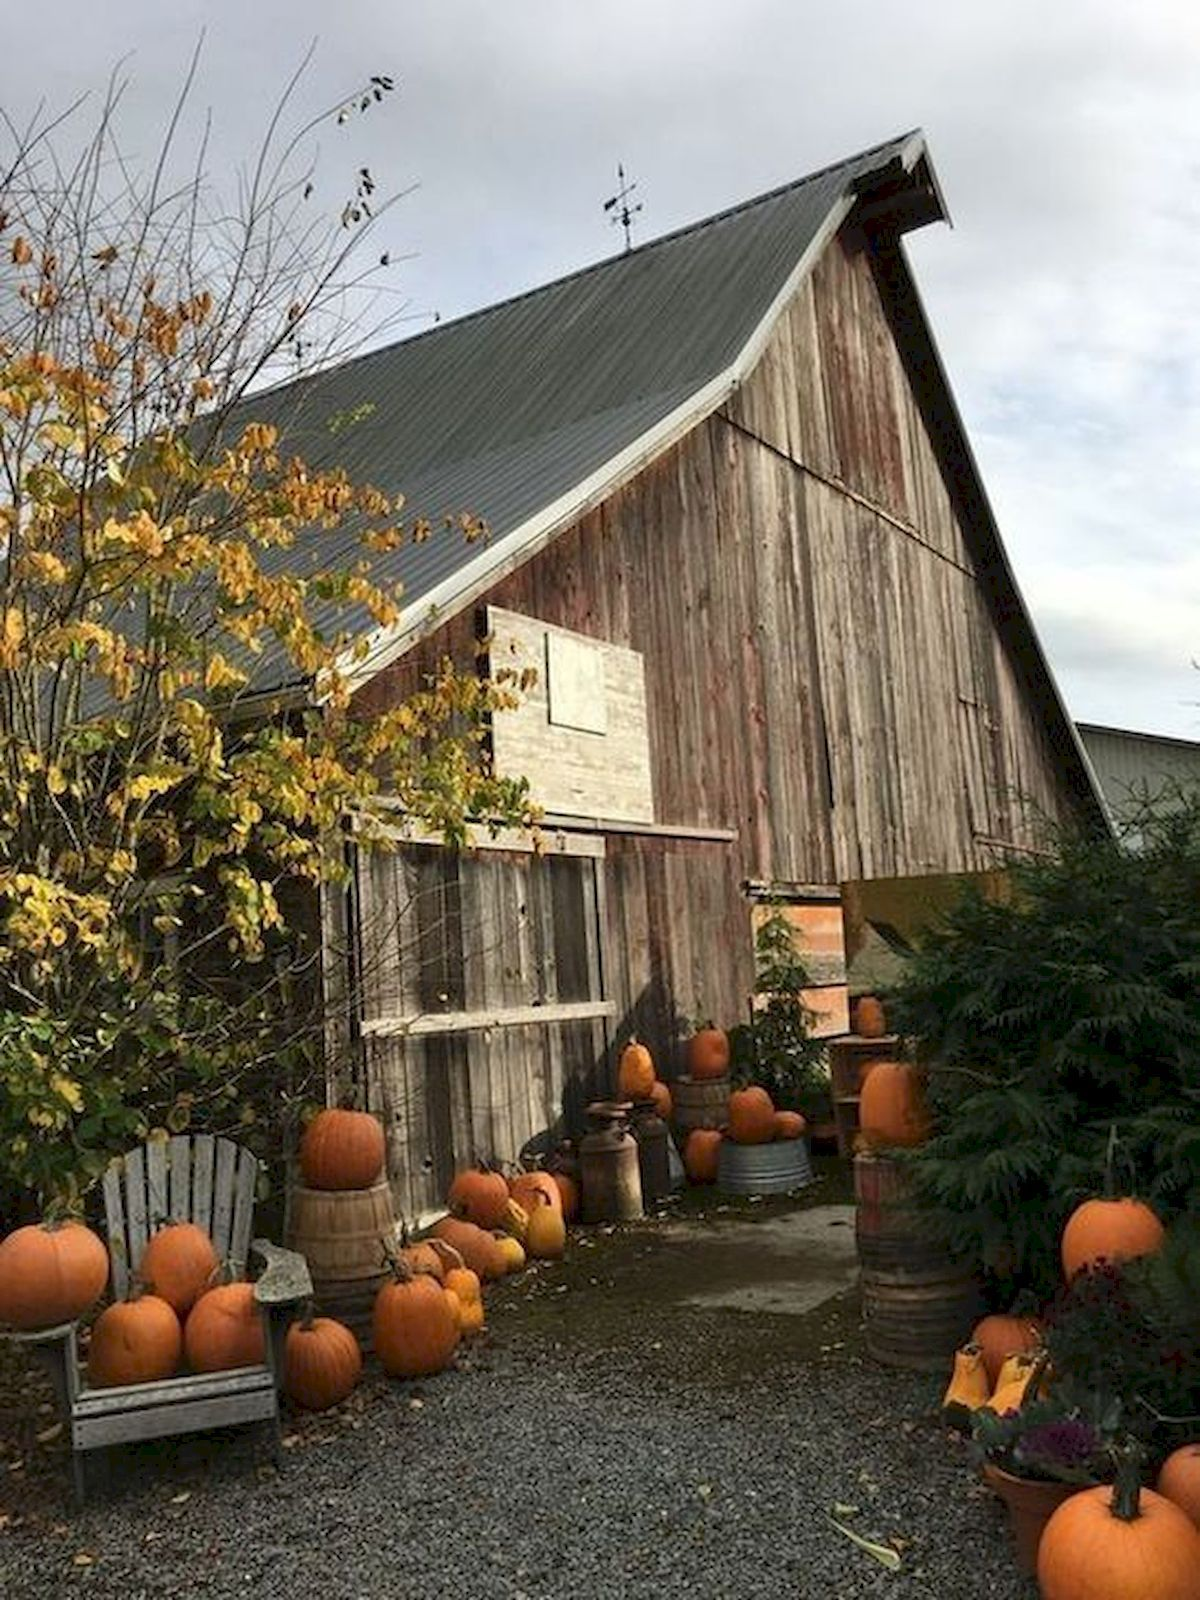 Pictures Of Barns In The Fall